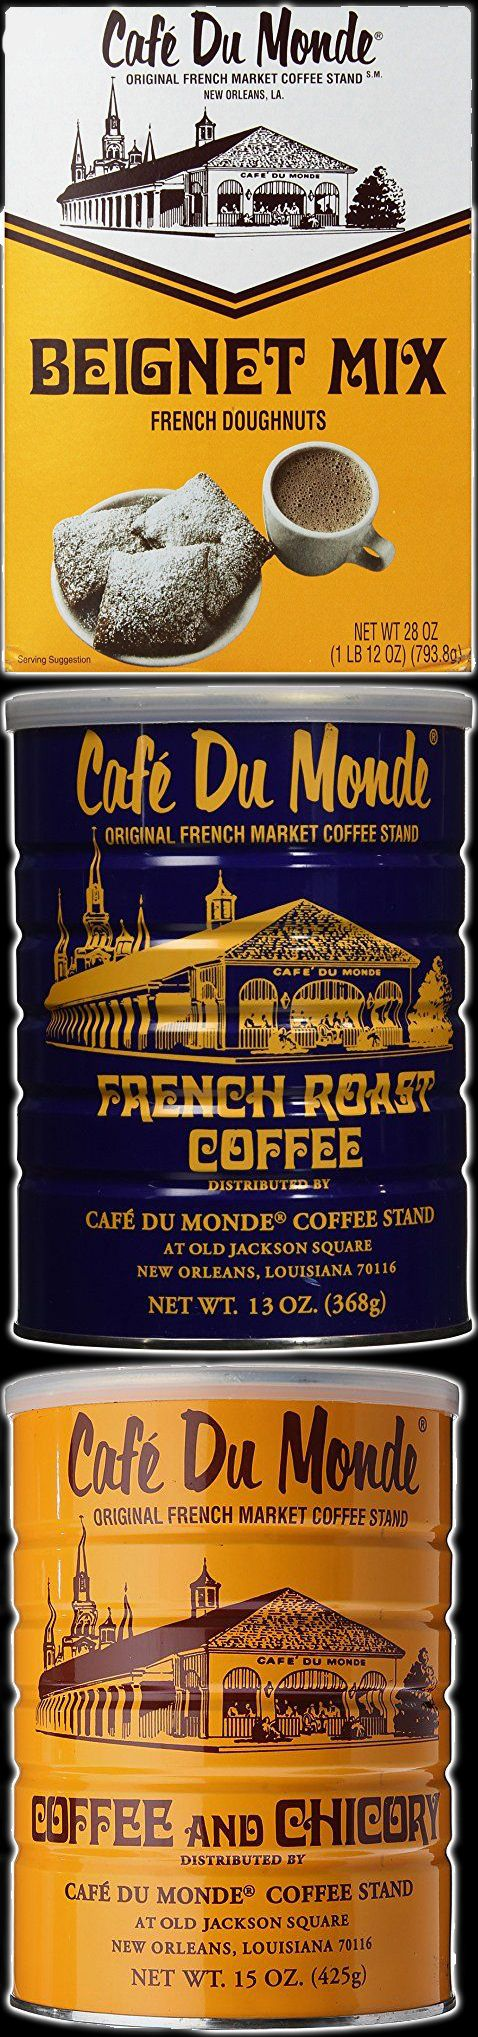 Café du Monde is a renowned open-air coffee shop located on Decatur Street in the French Quarter of New Orleans.  Their packaged Beignet Mix and Coffee are a perfect way to have authentic Louisiana food & drink at your Mardi Gras Voodoo Masquerade Ball Theme Halloween Party Decorations & Ideas